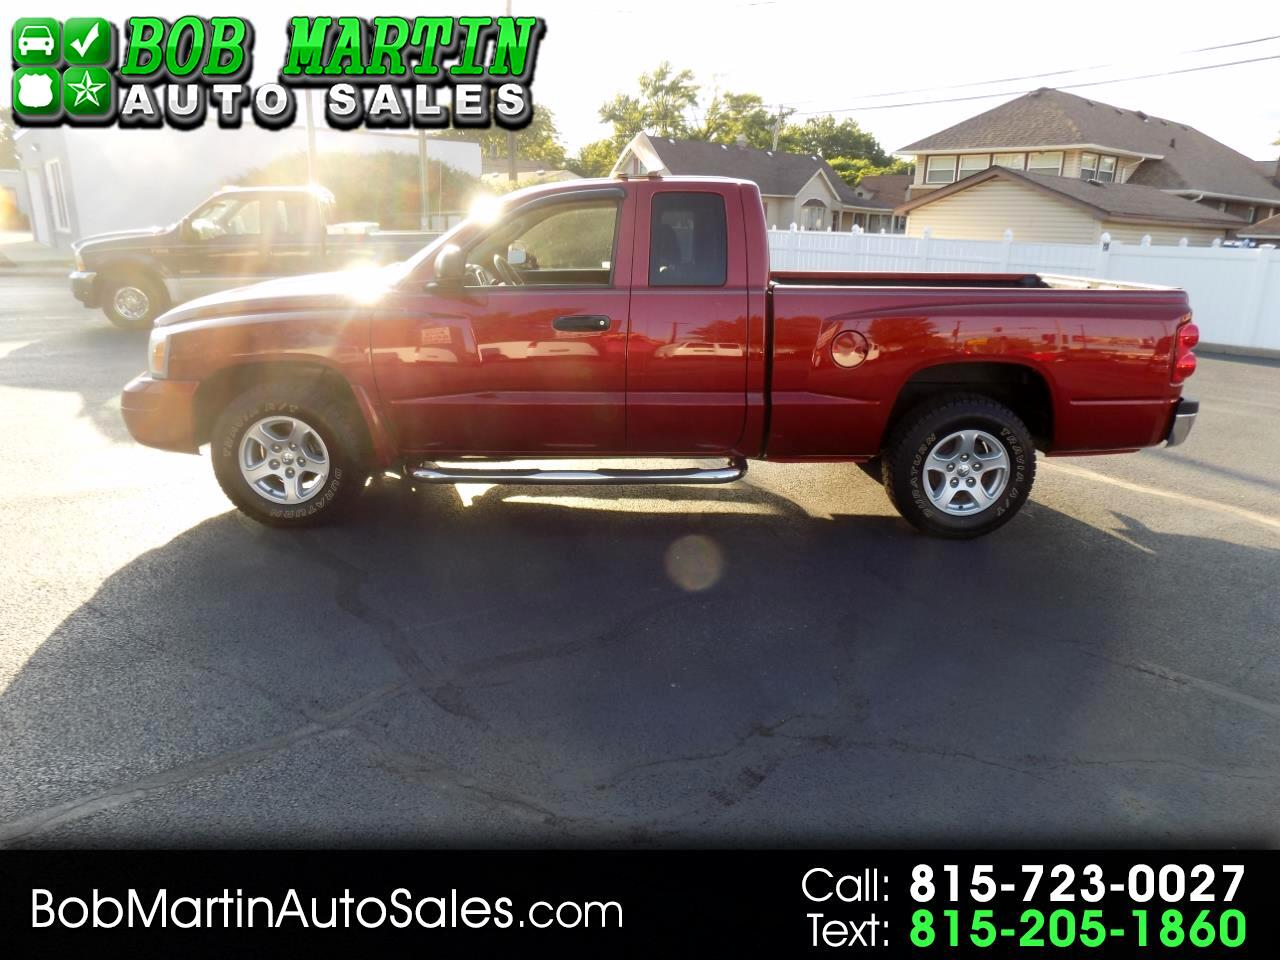 2006 Dodge Dakota 2dr Club Cab 131 SLT